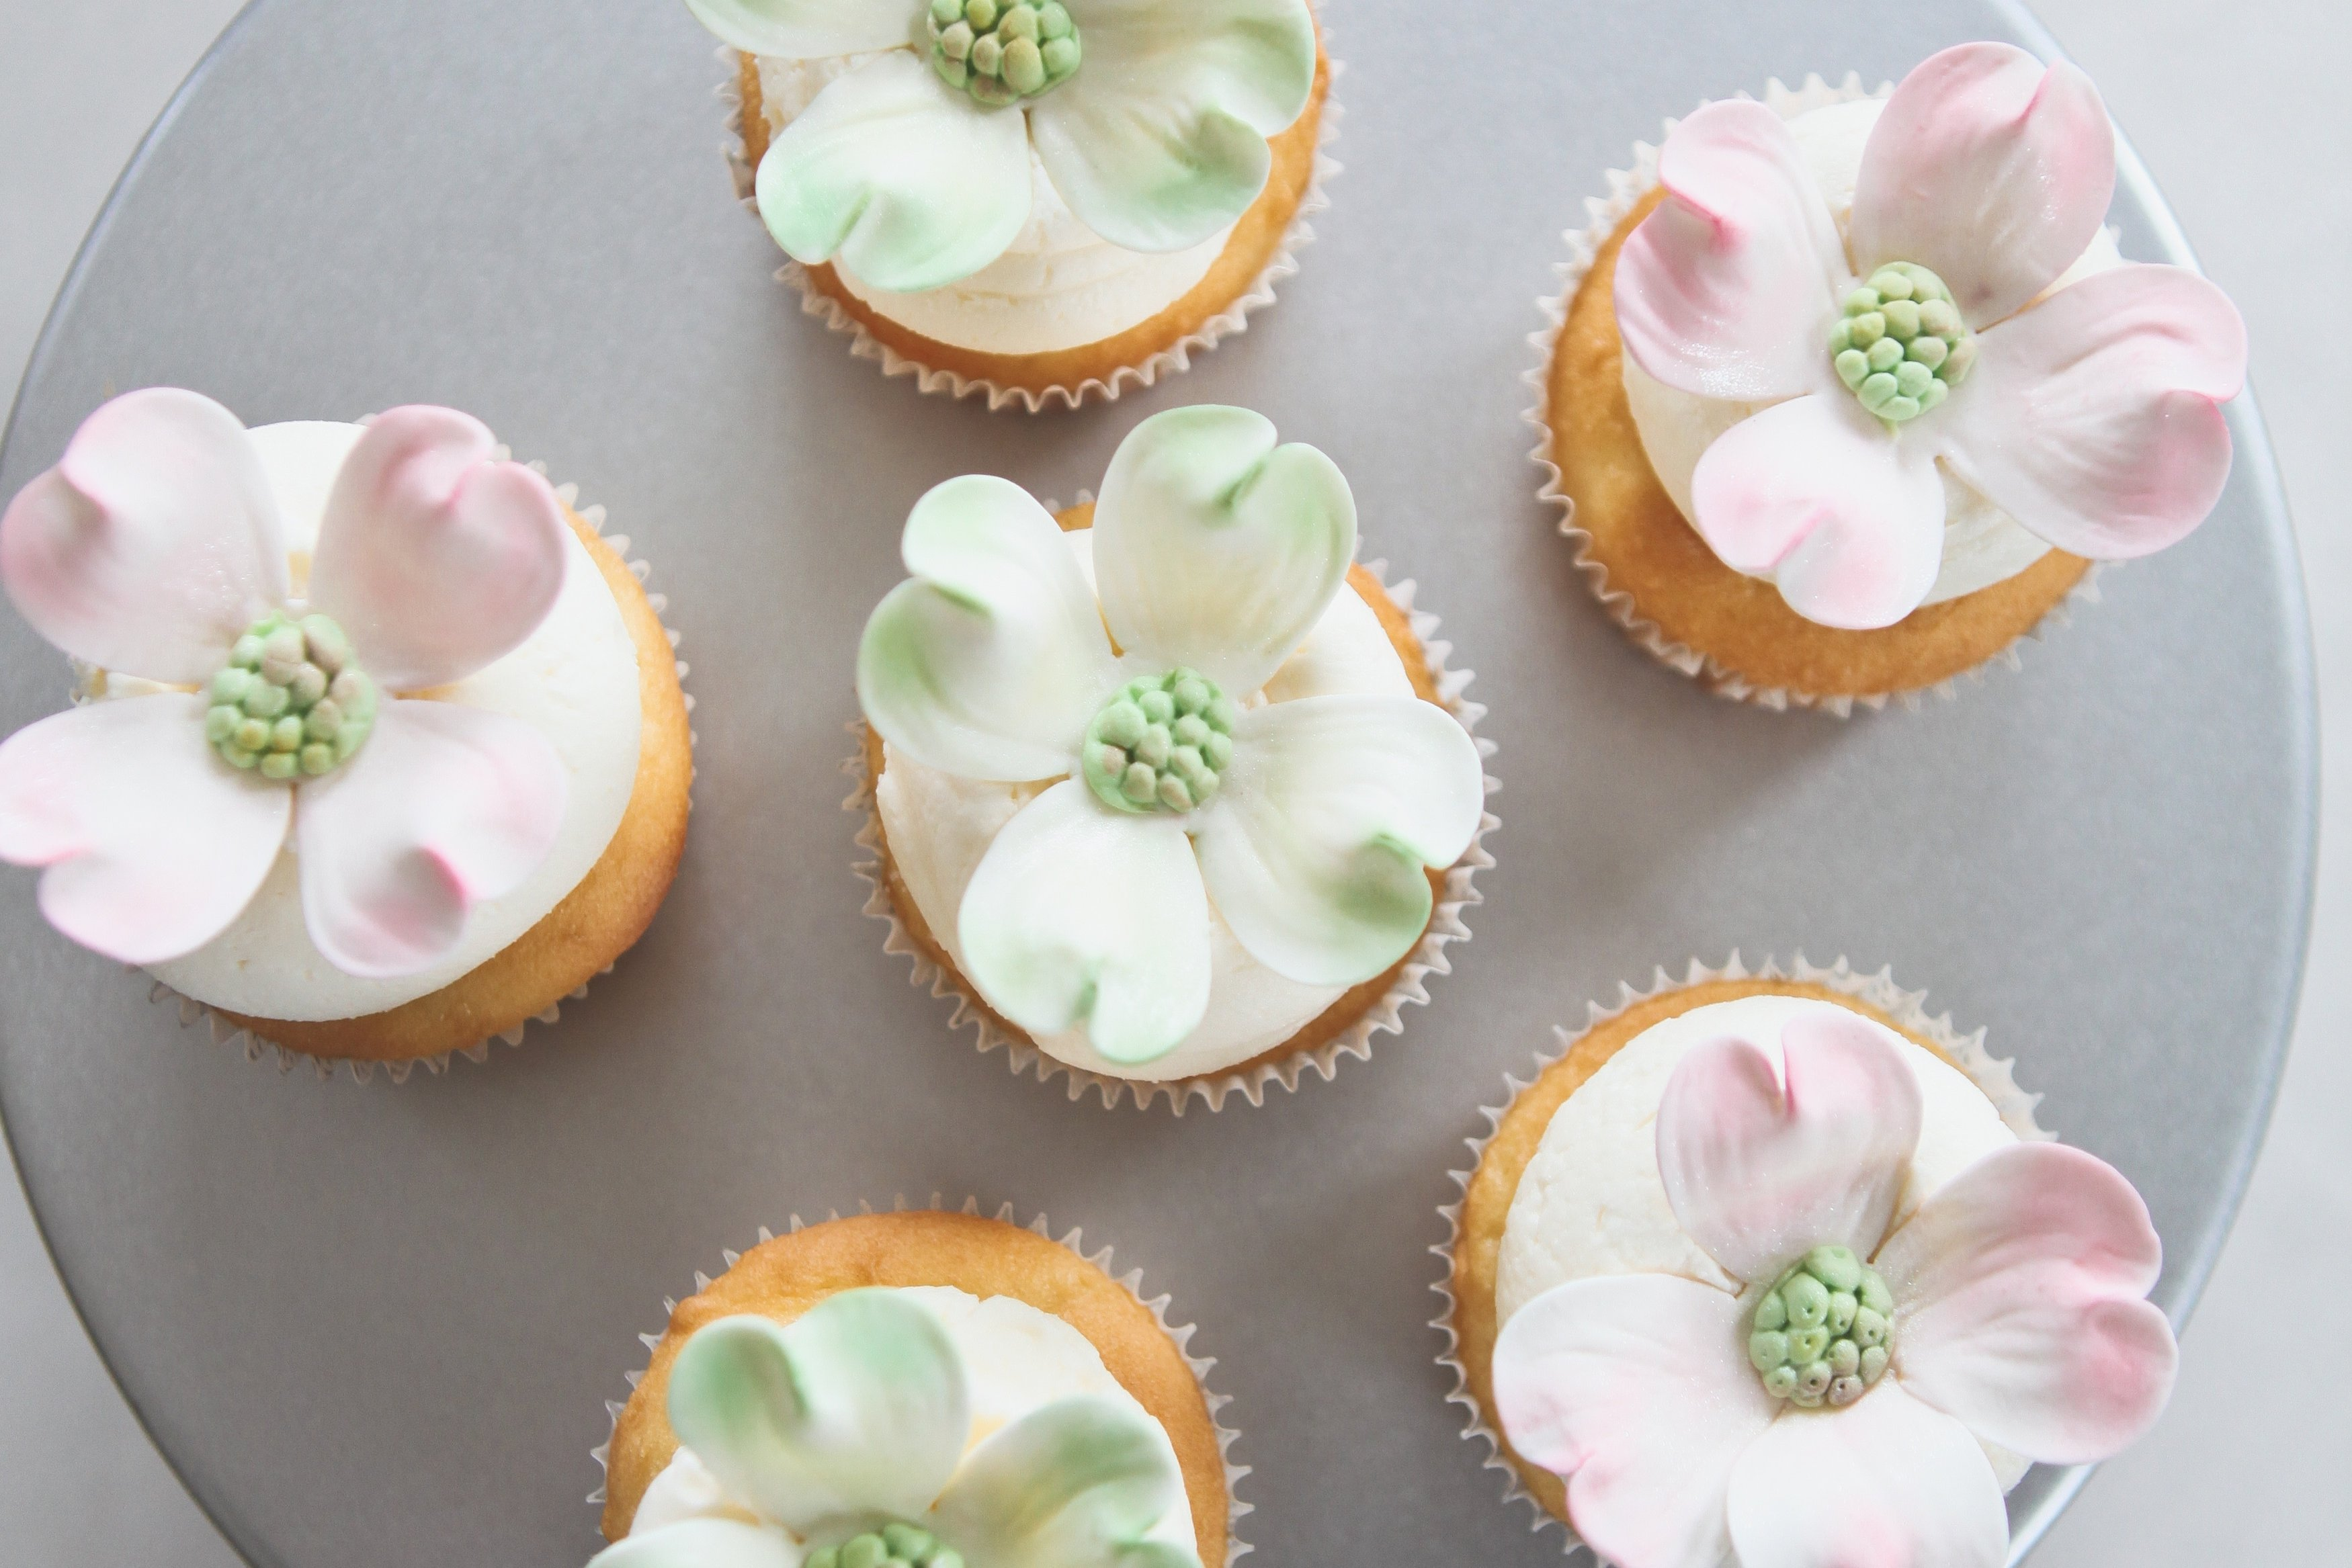 10 Beautiful Cupcake Ideas For Bridal Shower diy virginia dogwood bridal shower cupcakes united with love 2020